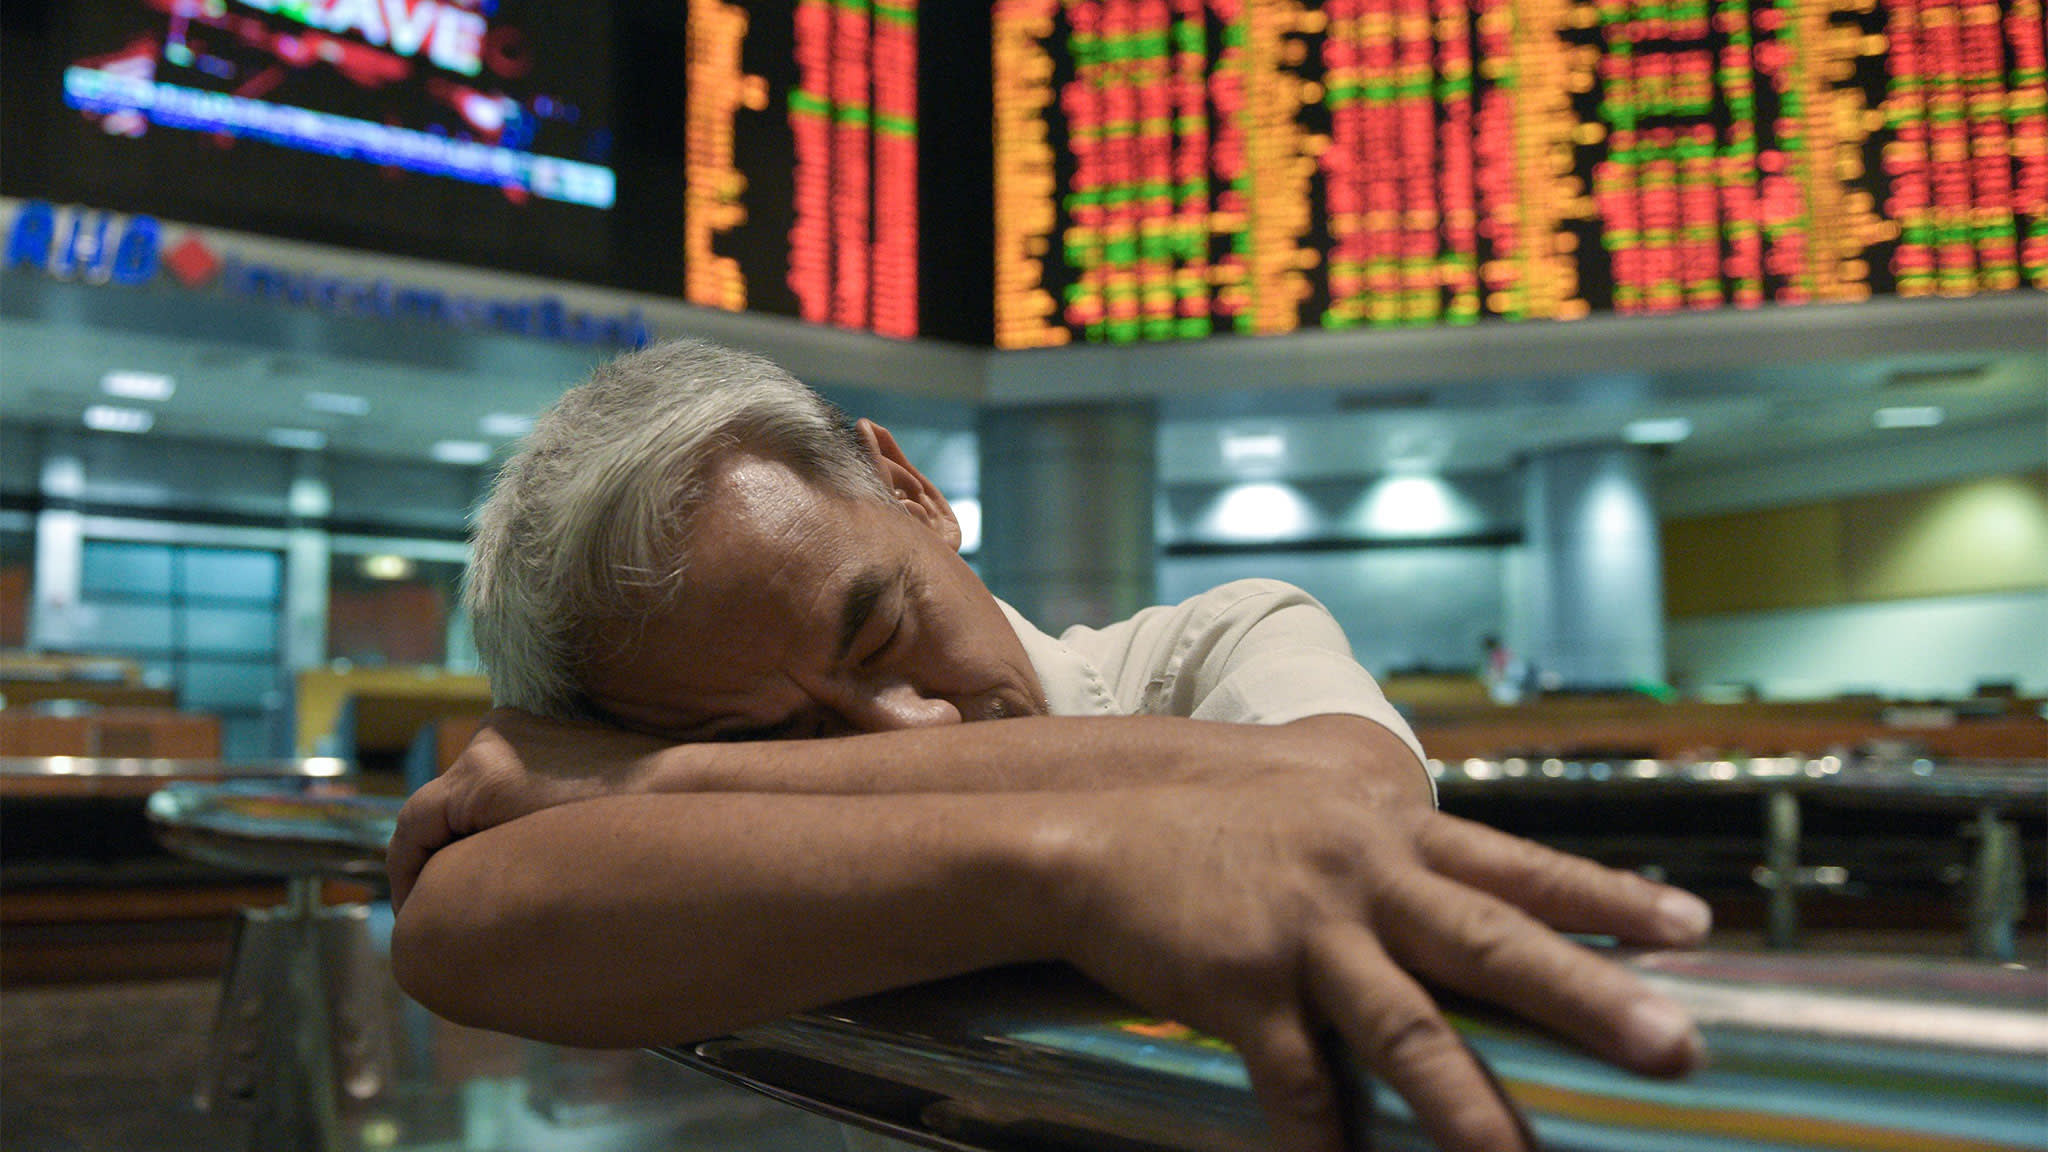 The work catches up with a trader at the Malaysia stock exchange in Kuala Lumpur